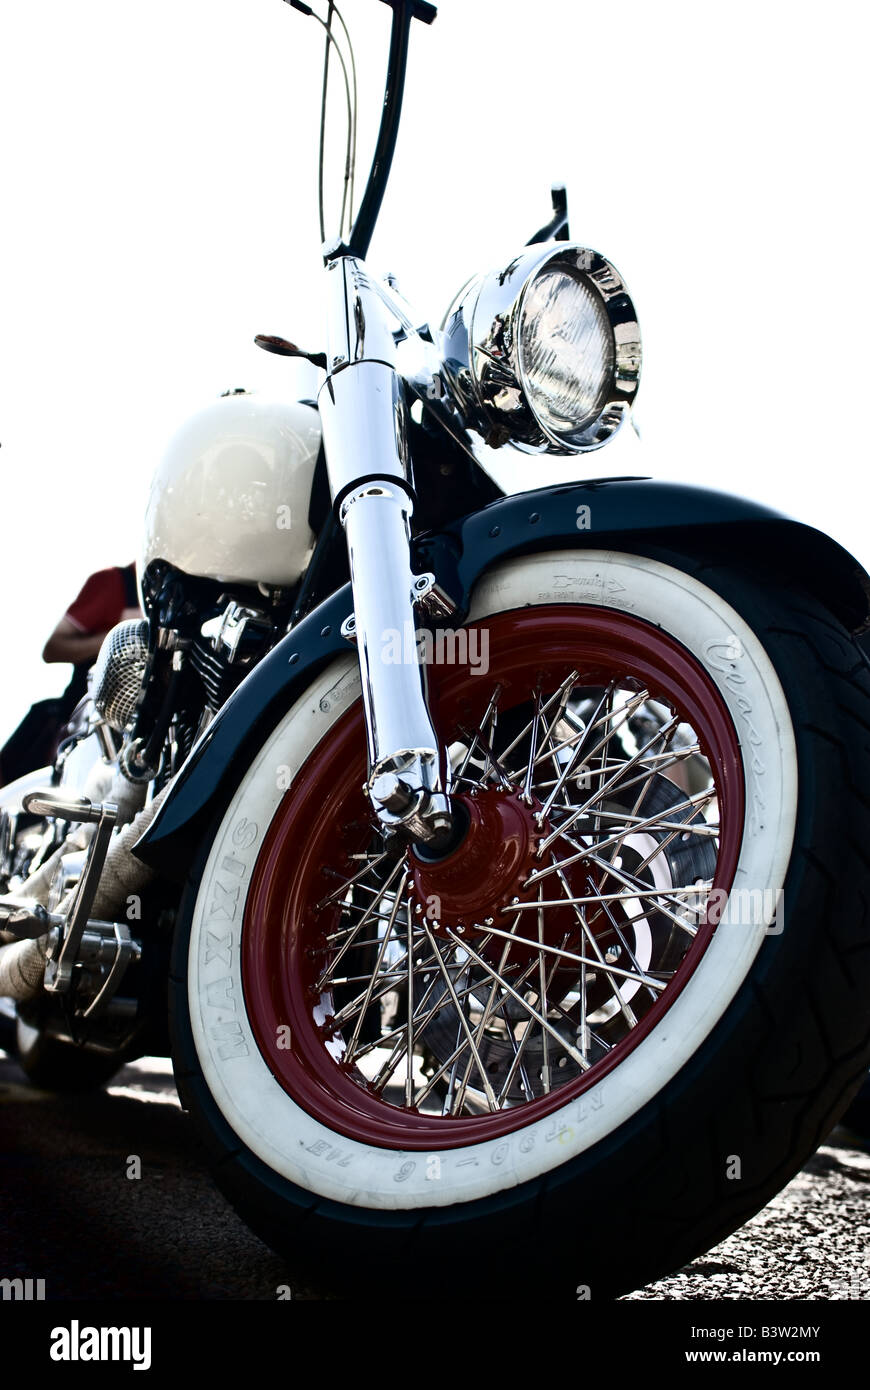 harley davidson motorcycle with white wall tyres on red rims high stock photo 19605291 alamy. Black Bedroom Furniture Sets. Home Design Ideas